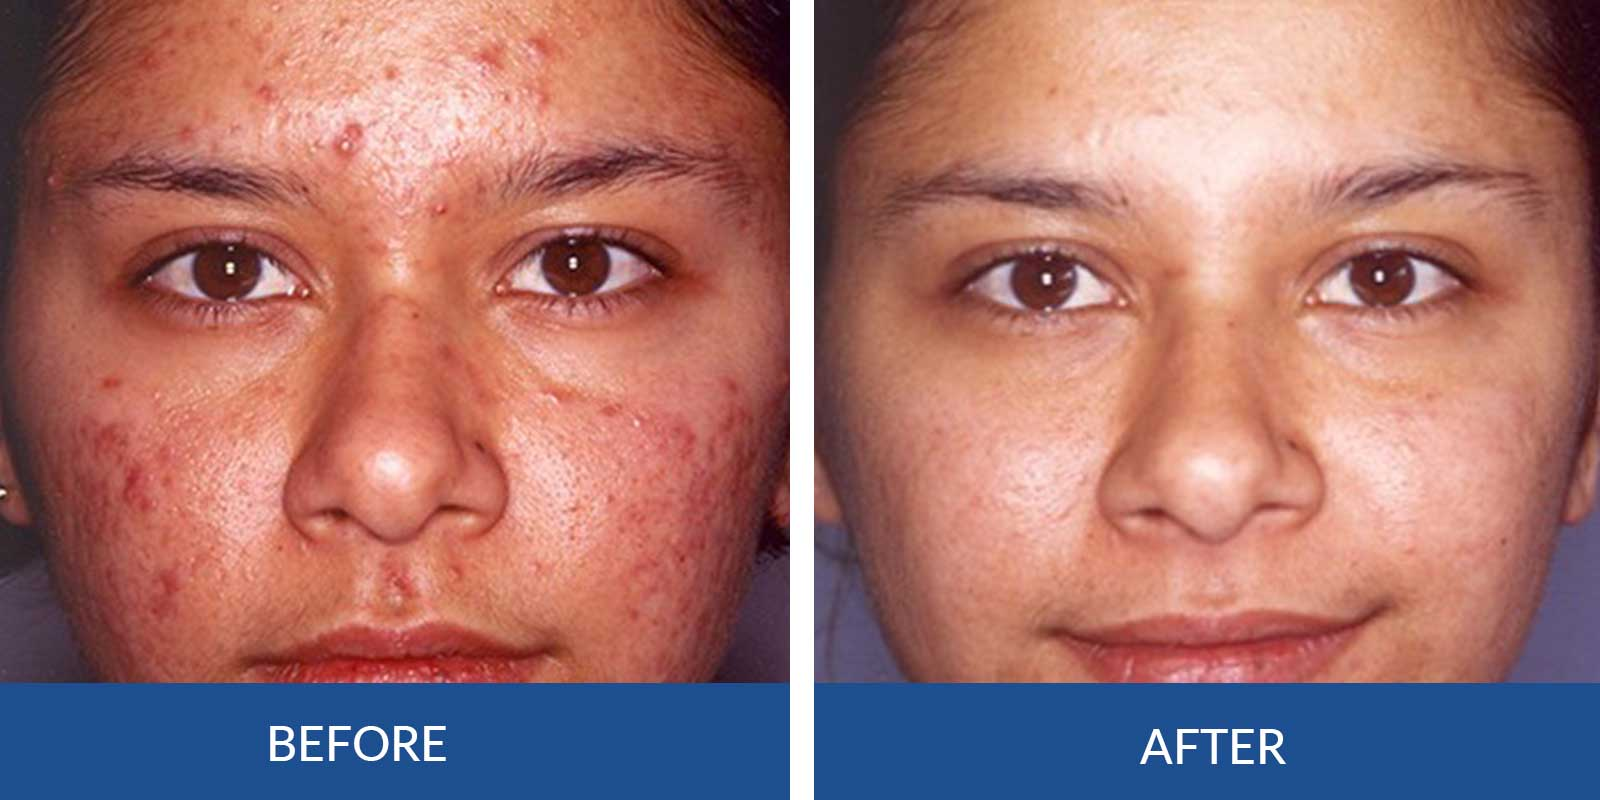 Acne-1-2-Before--afterTreatment